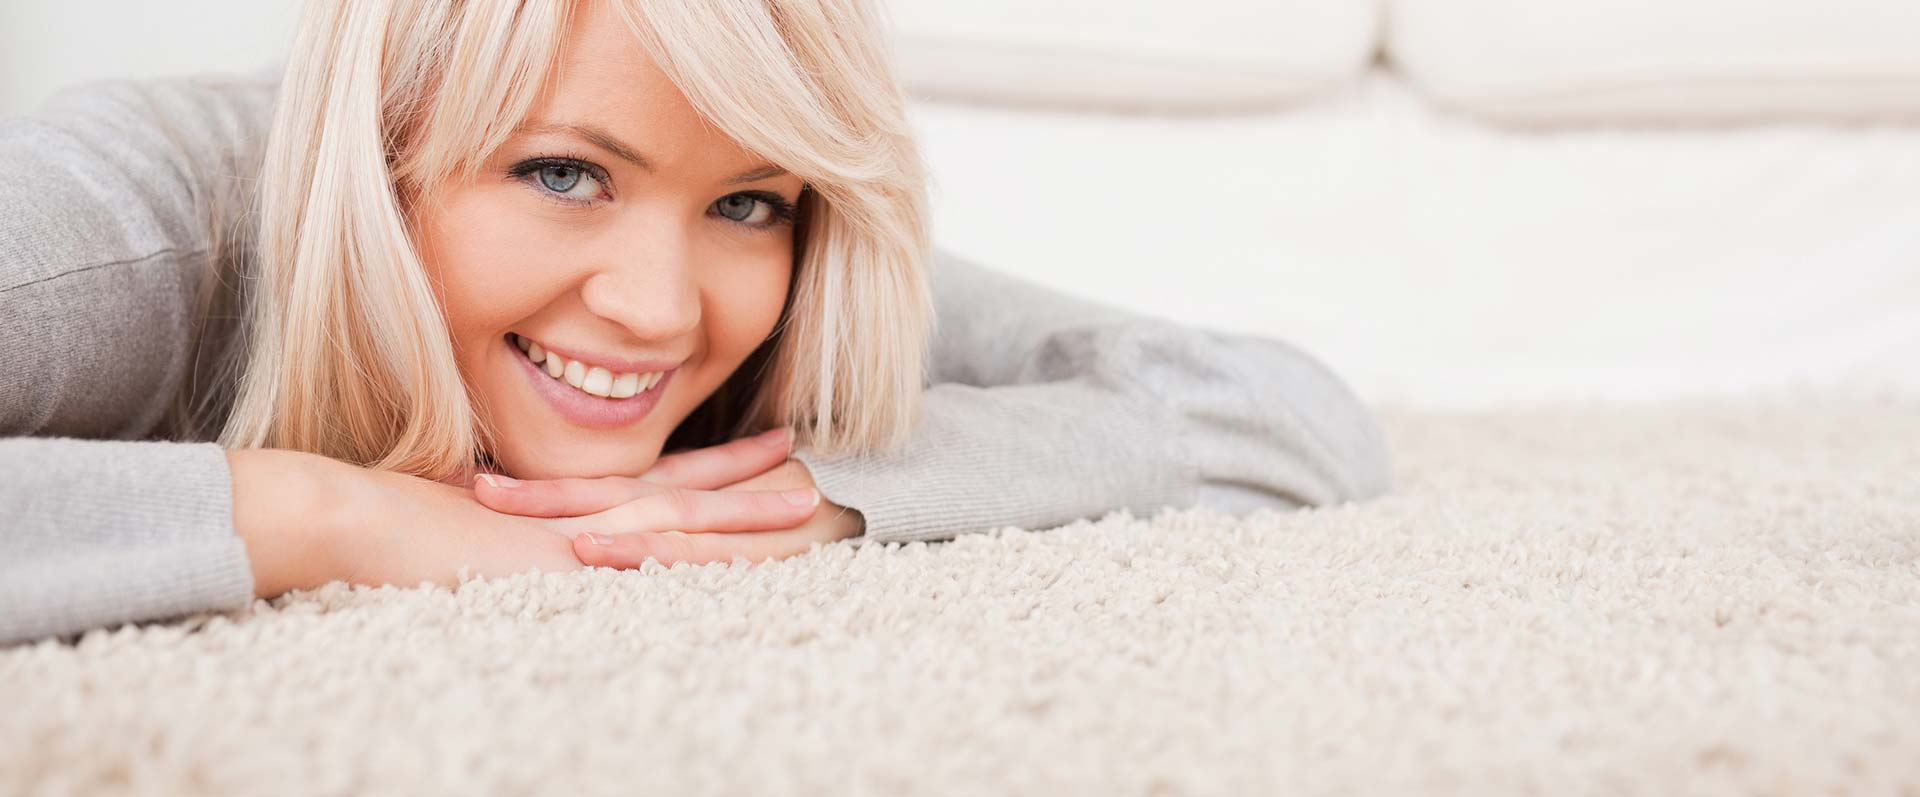 Residential Carpet Cleaners Pensacola FL